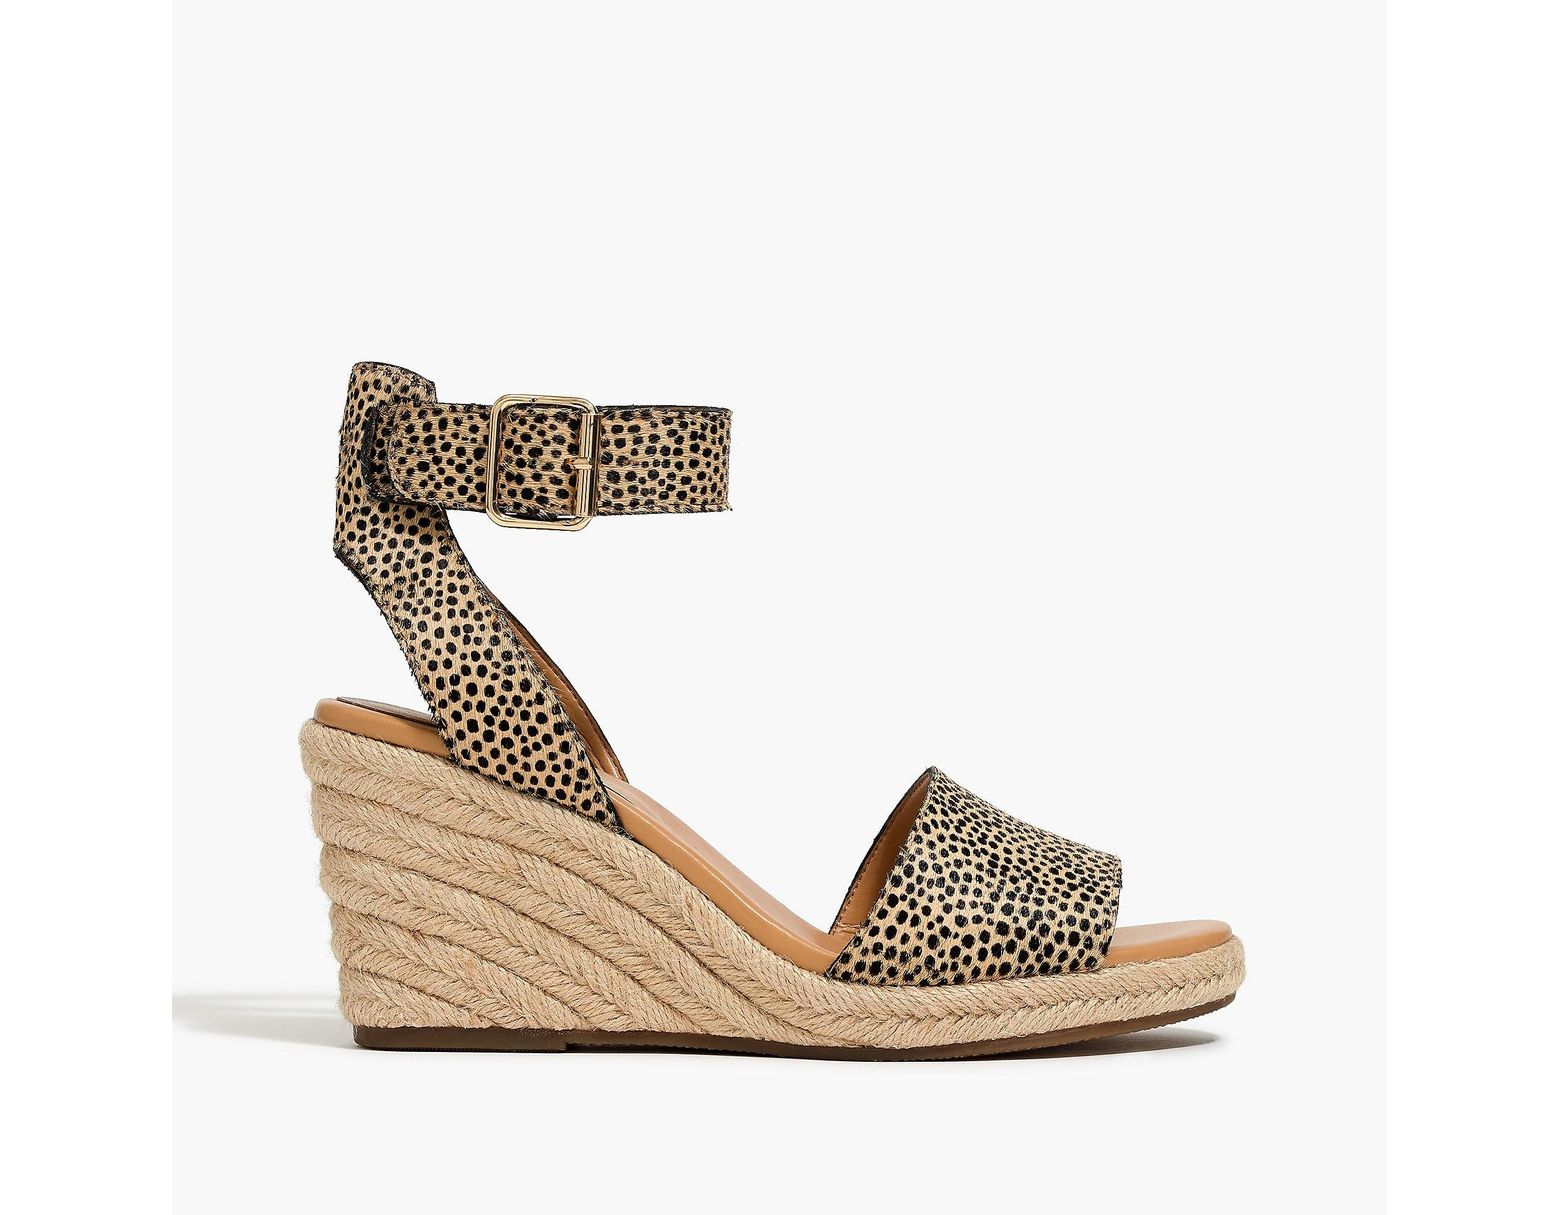 1b4954445c8 Women's Calf Hair Espadrille Wedge Sandals